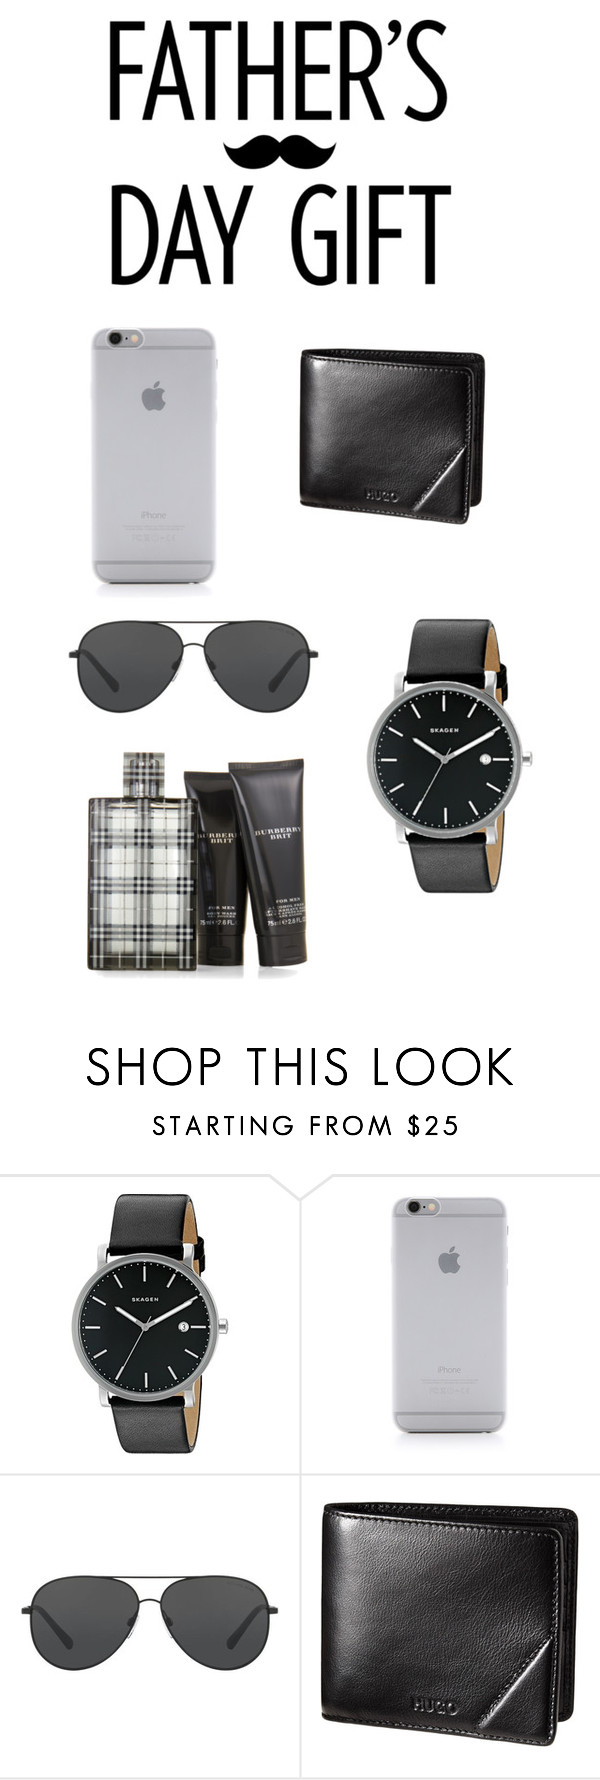 """Untitled #106"" by claudoral ❤ liked on Polyvore featuring Skagen, Native Union, Michael Kors, Burberry, men's fashion, menswear and fathersdaygiftguide"